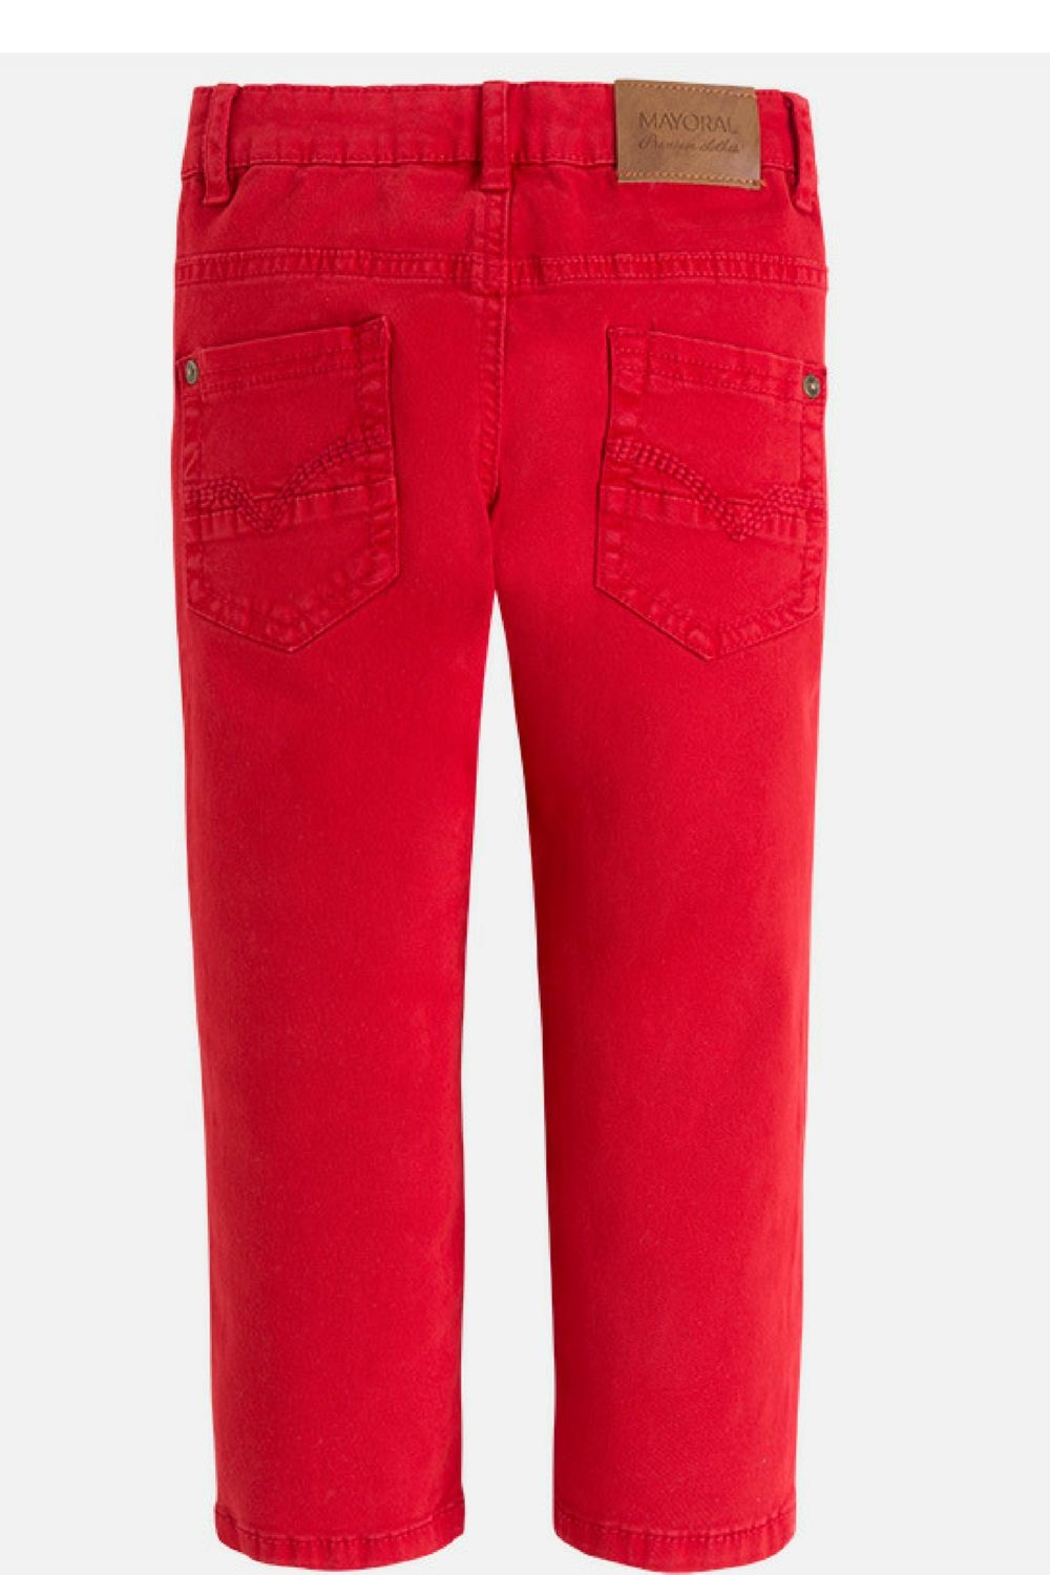 Mayoral Watermelon Chinos - Front Full Image